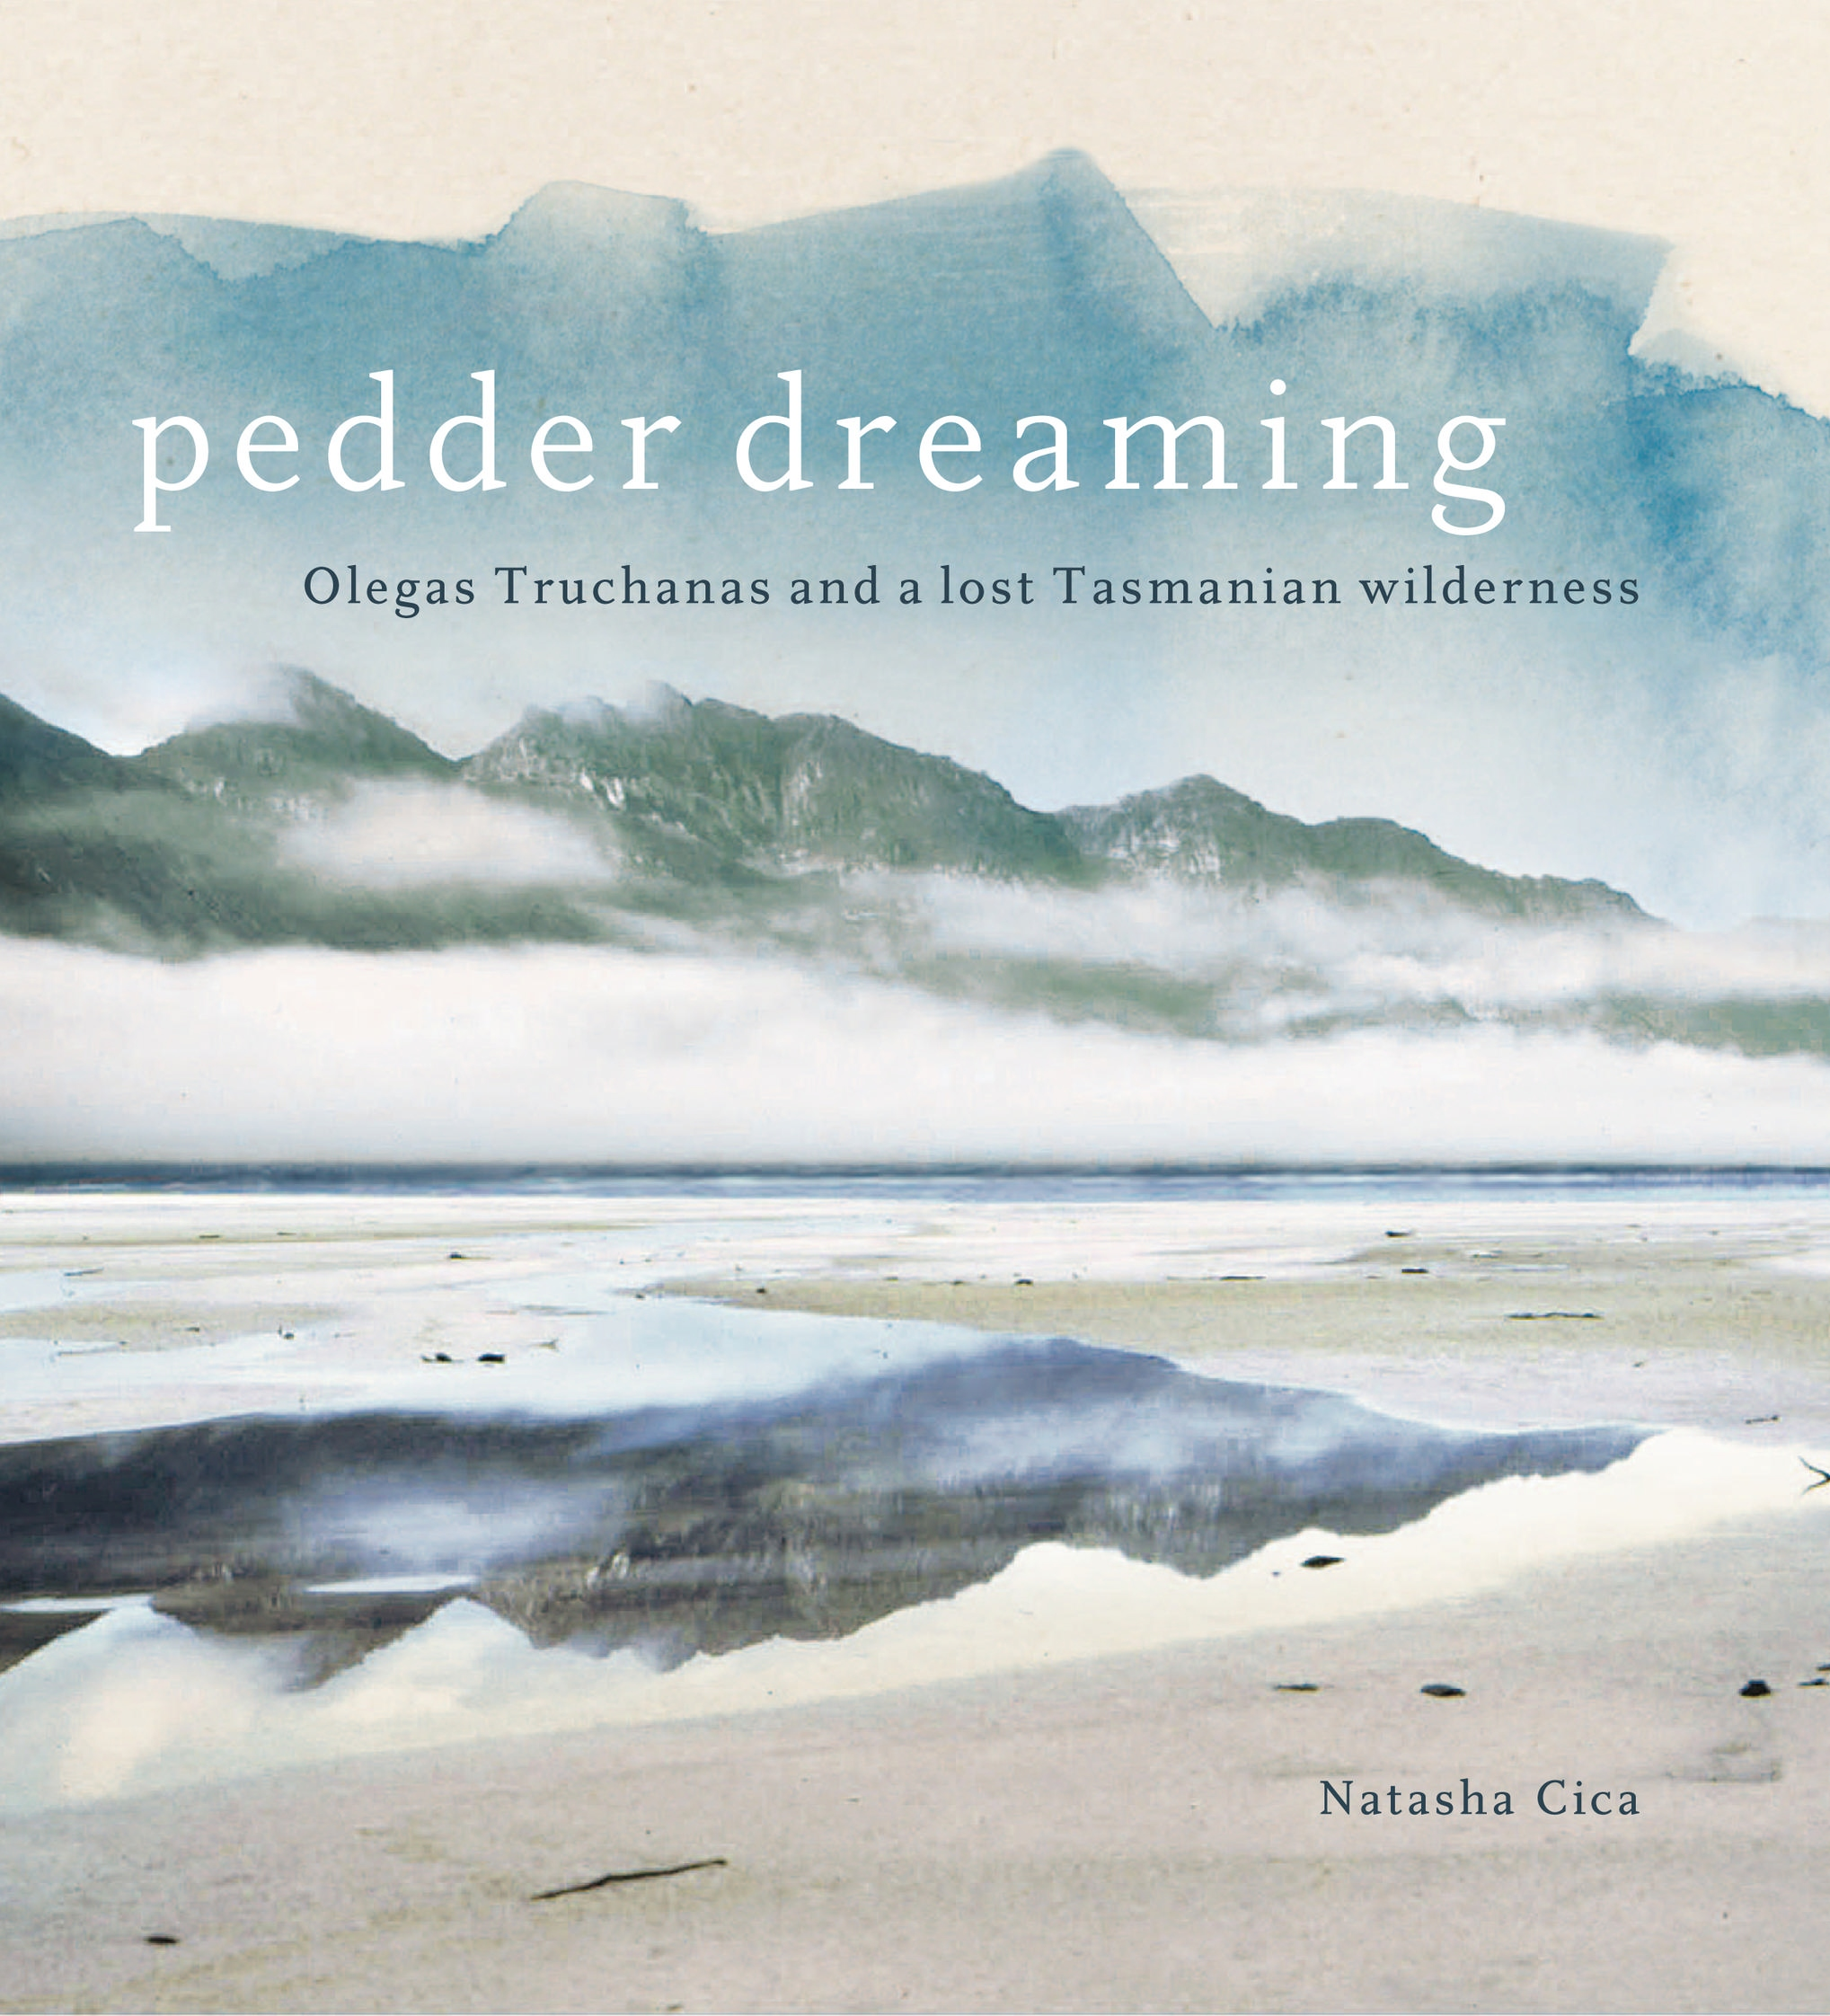 Pedder Dreaming: Olegas Truchanas and a Lost Tasmanian Wilderness by Cica Natasha, ISBN: 9780702236723